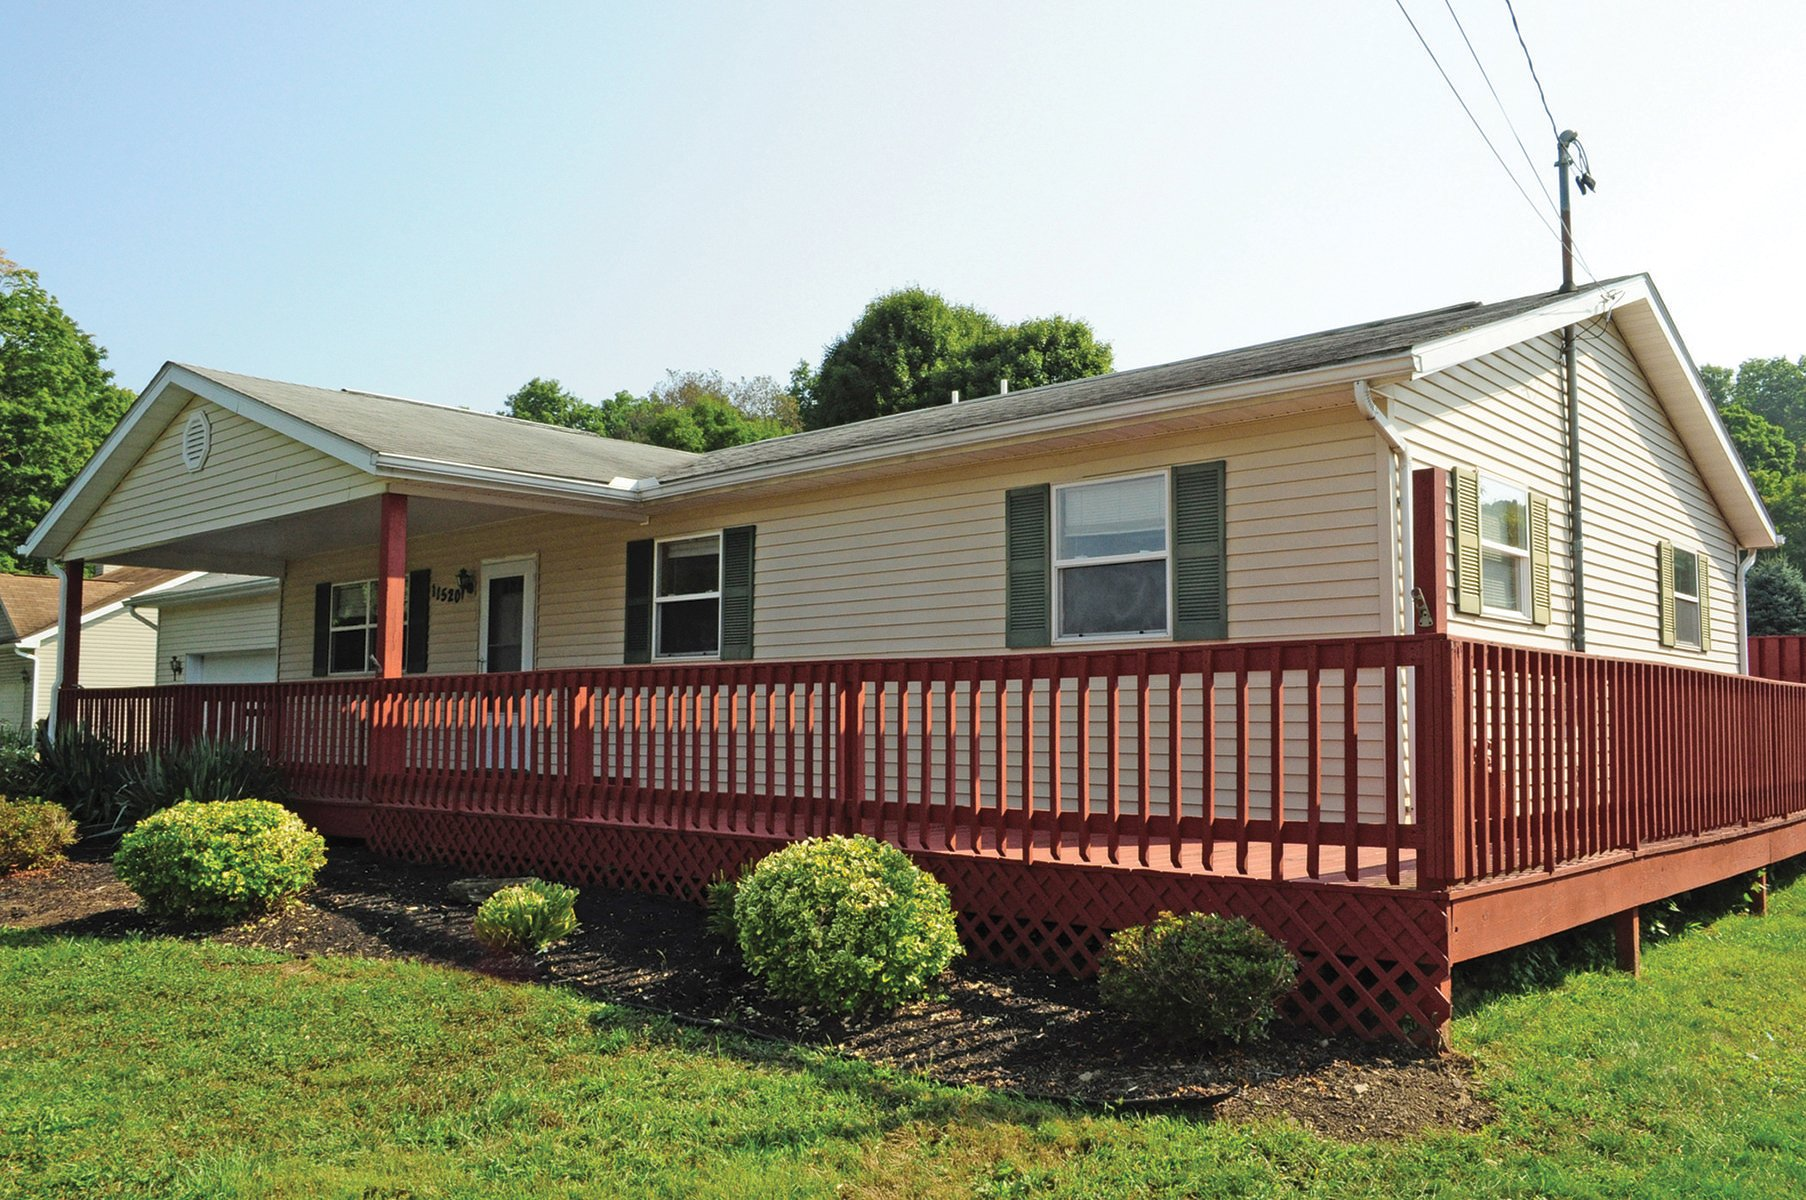 Meadville Care Cottage